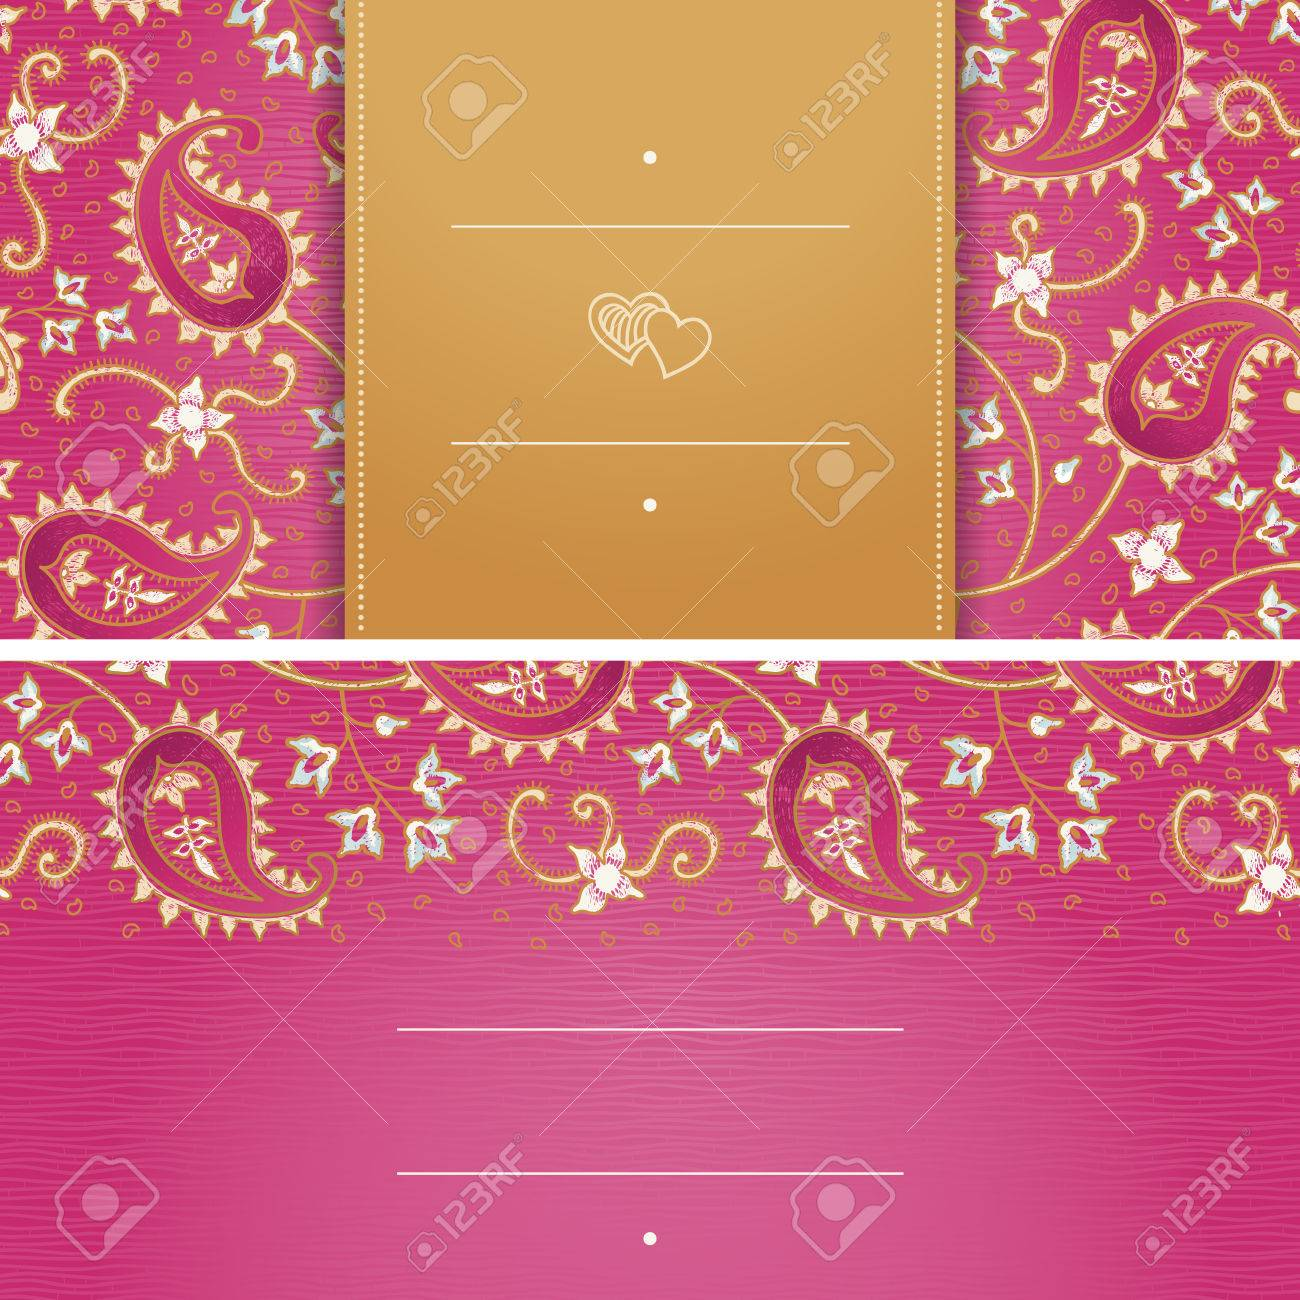 Vintage Greeting Cards With Swirls And Floral Motifs In East Style